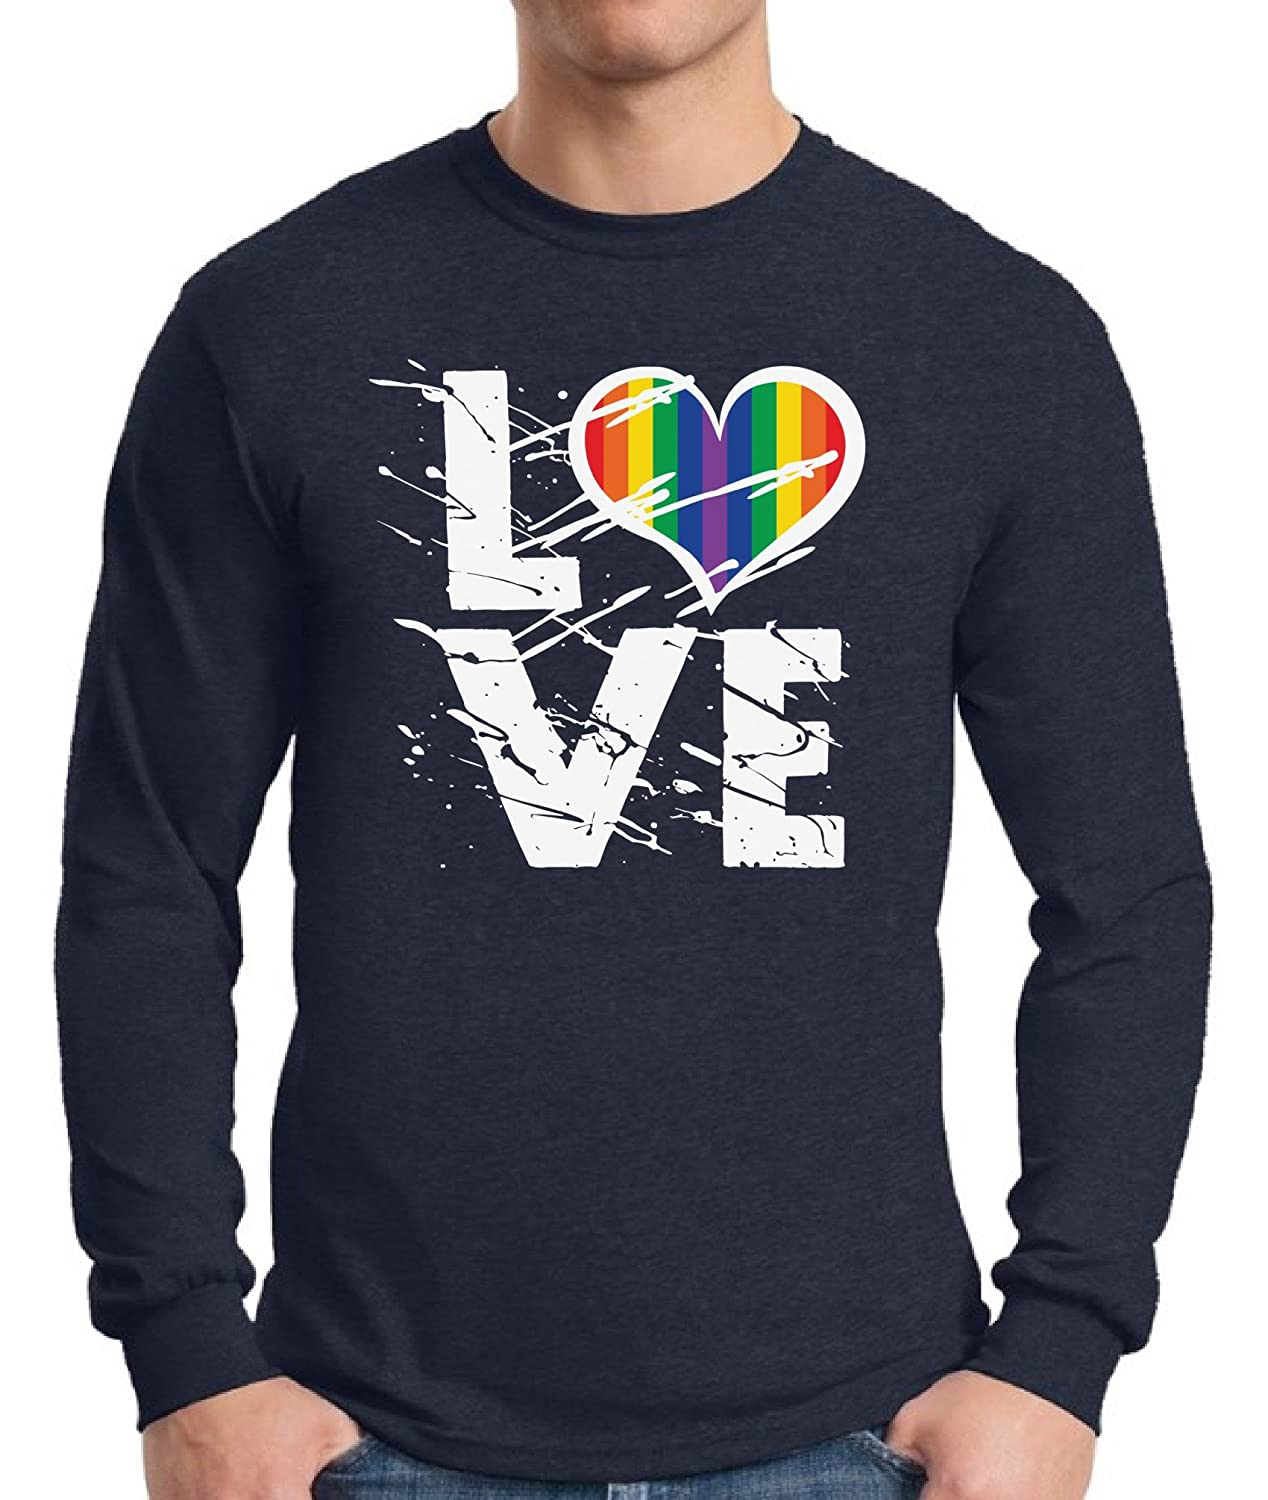 8e38080ca Tired of the shaggy comments? Strut around in this Awkward Styles Love Long  Sleeve T shirt Tee and spread the love for all the colors of the rainbow!